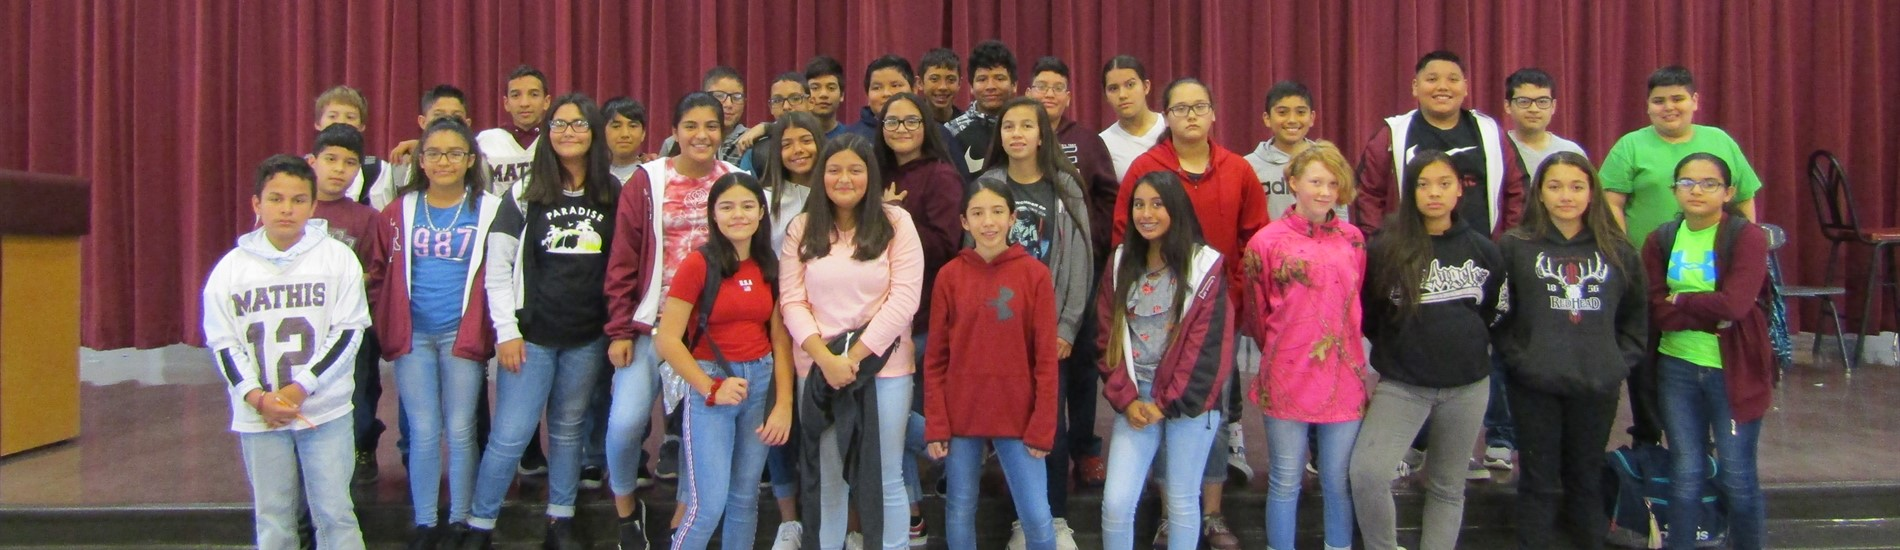 Mathis Middle School 7th Grade A and B Honor Roll Students